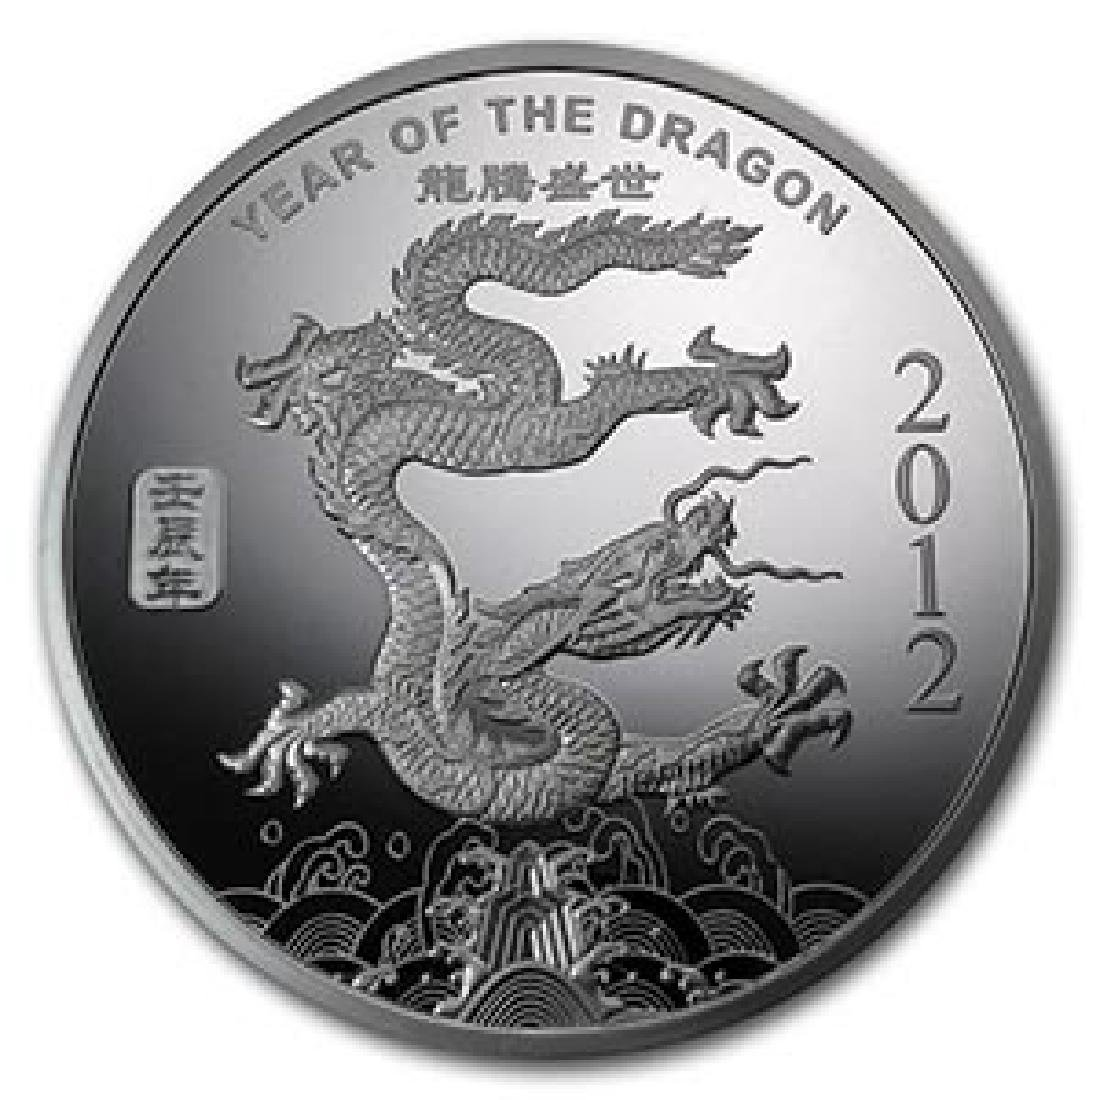 5 oz Silver Round - (2012 Year of the Dragon)